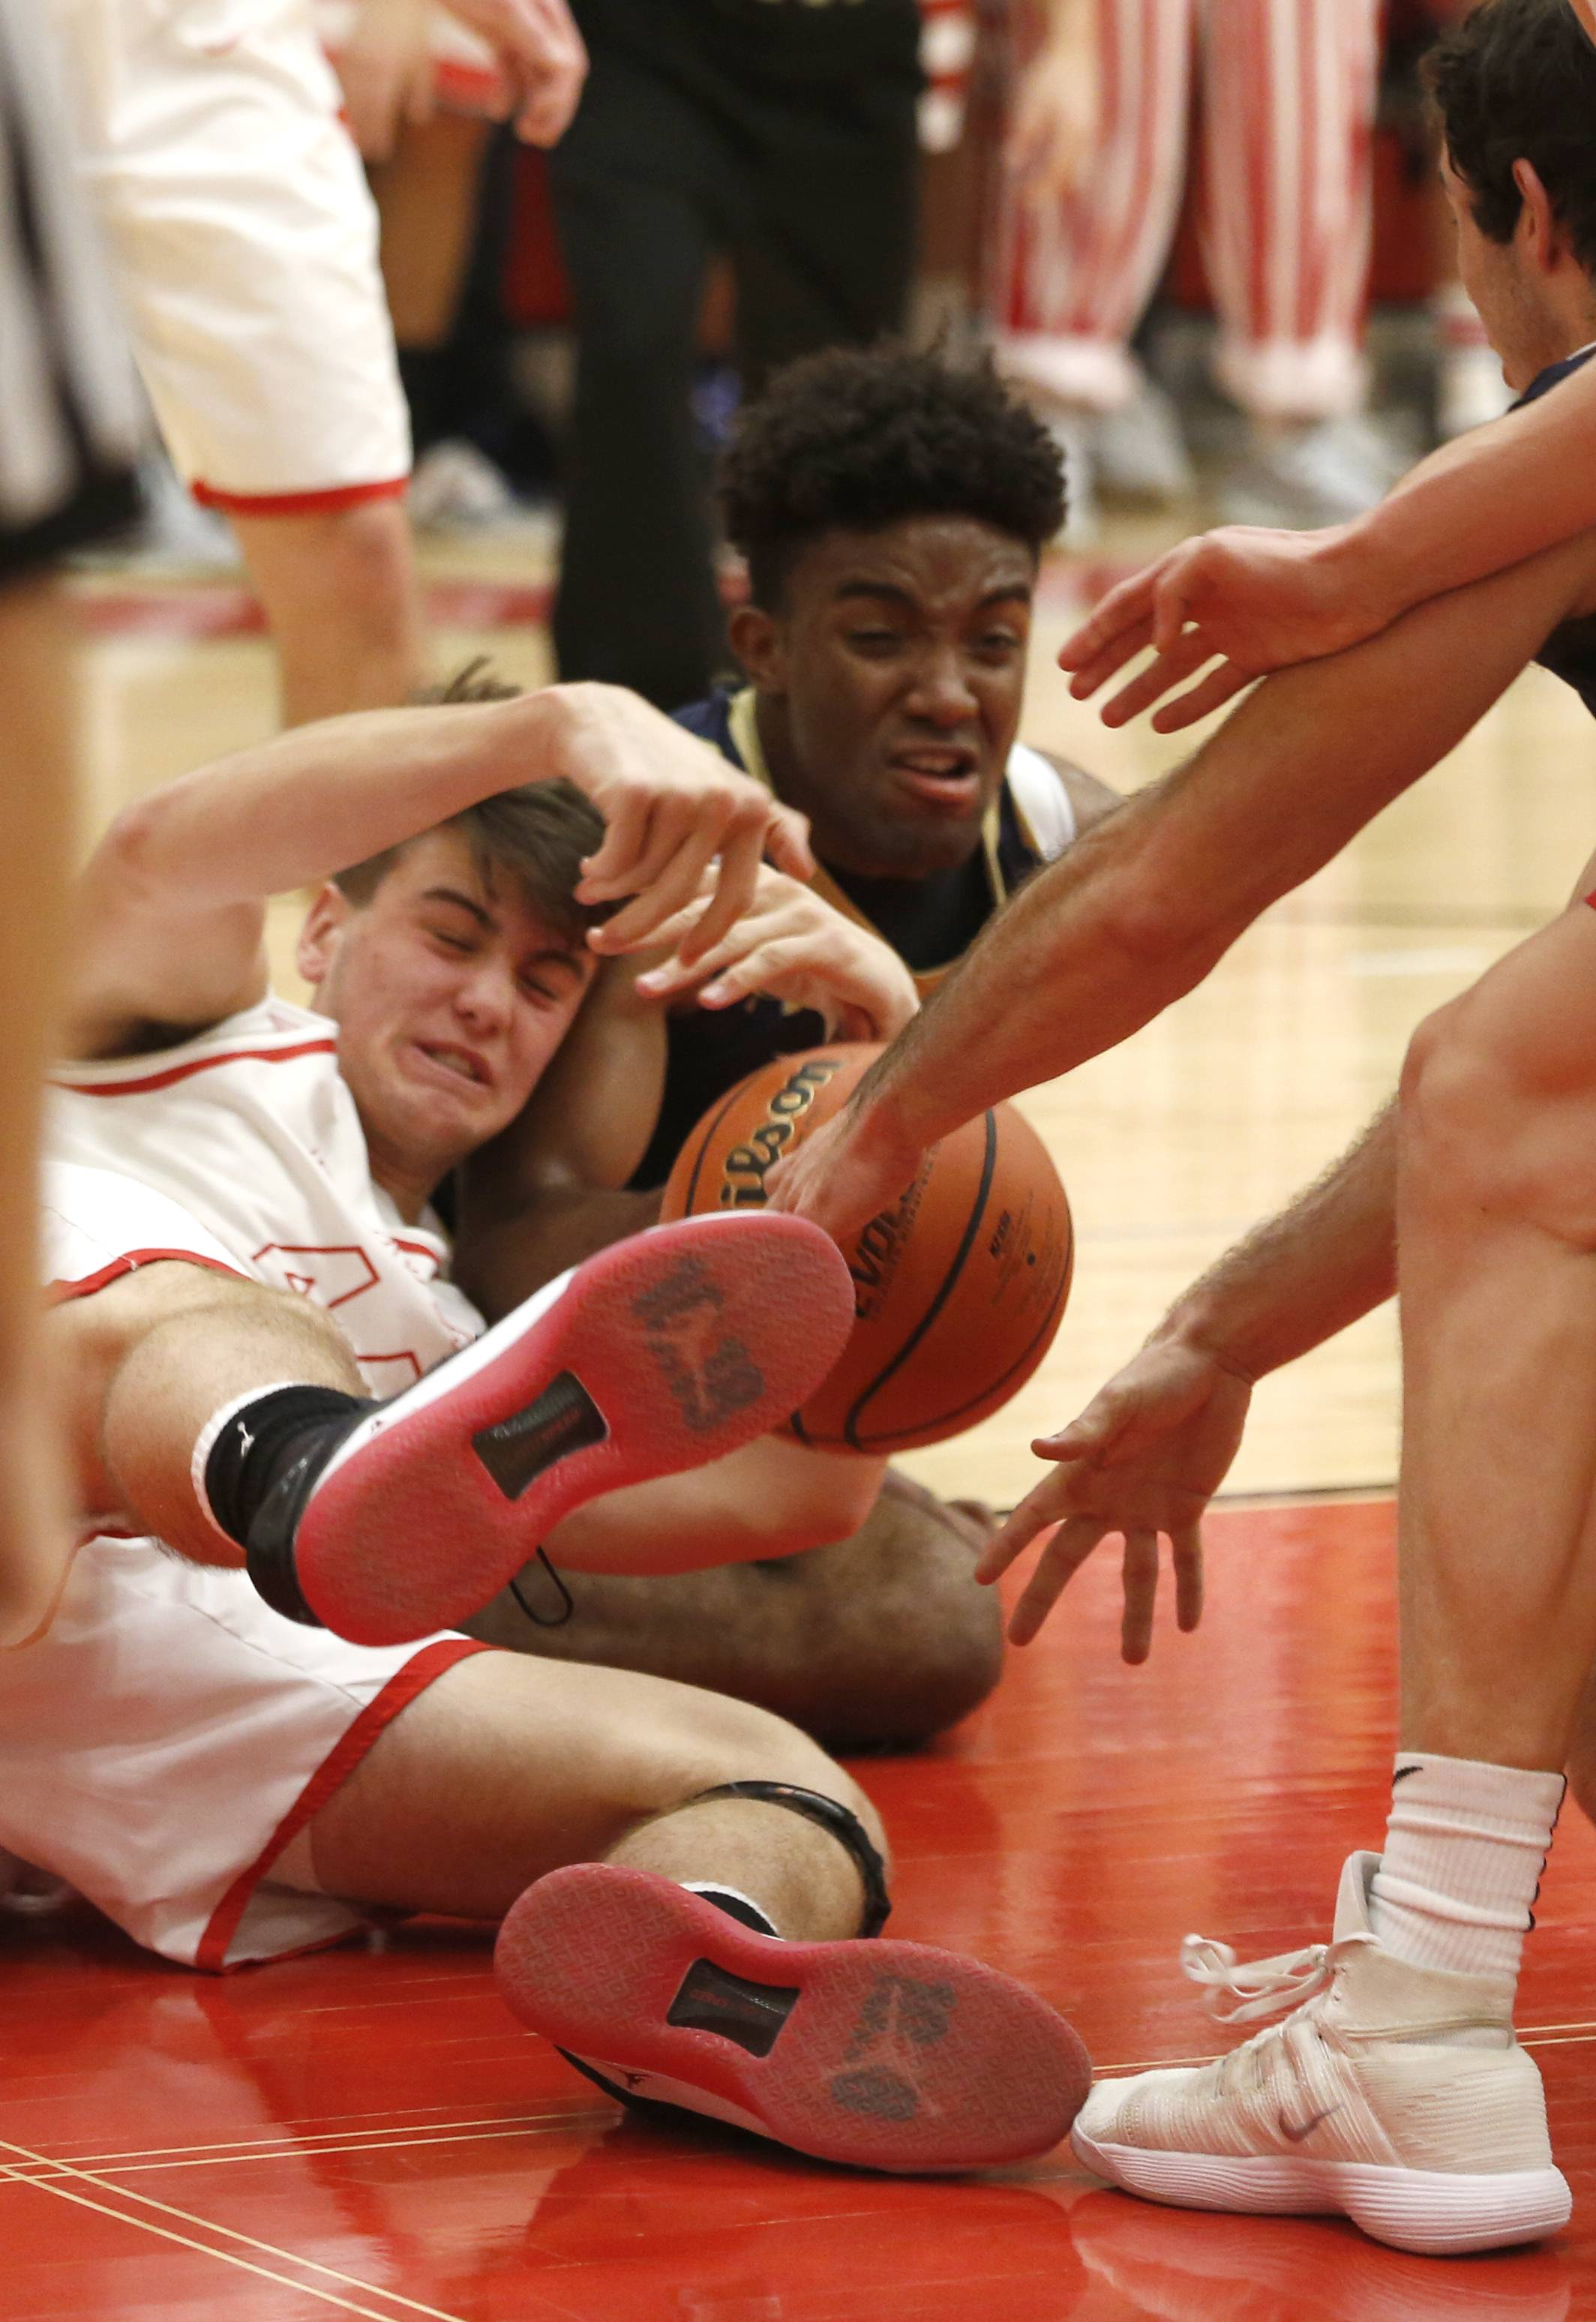 Timothy Christian's Nick Huisman, left, fights for a loose ball with IC Catholic Prep's Khali Saunders, right.